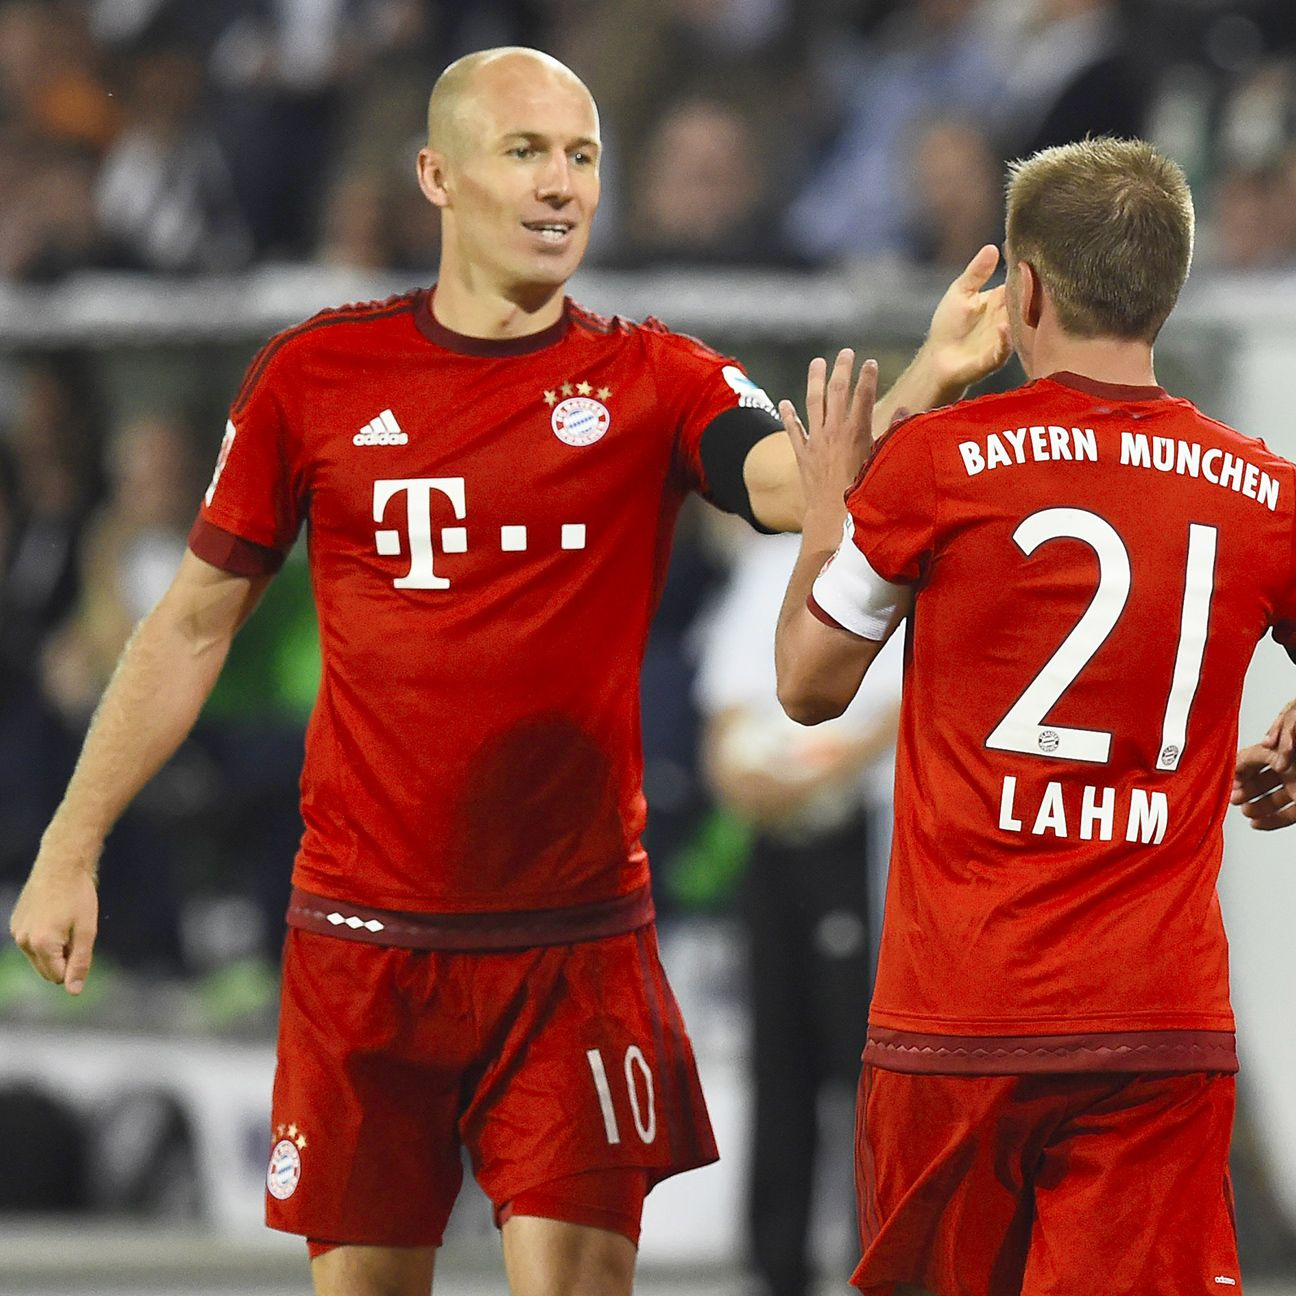 2012-13 Champions League winners Bayern Munich should have little difficulty navigating through Group F.